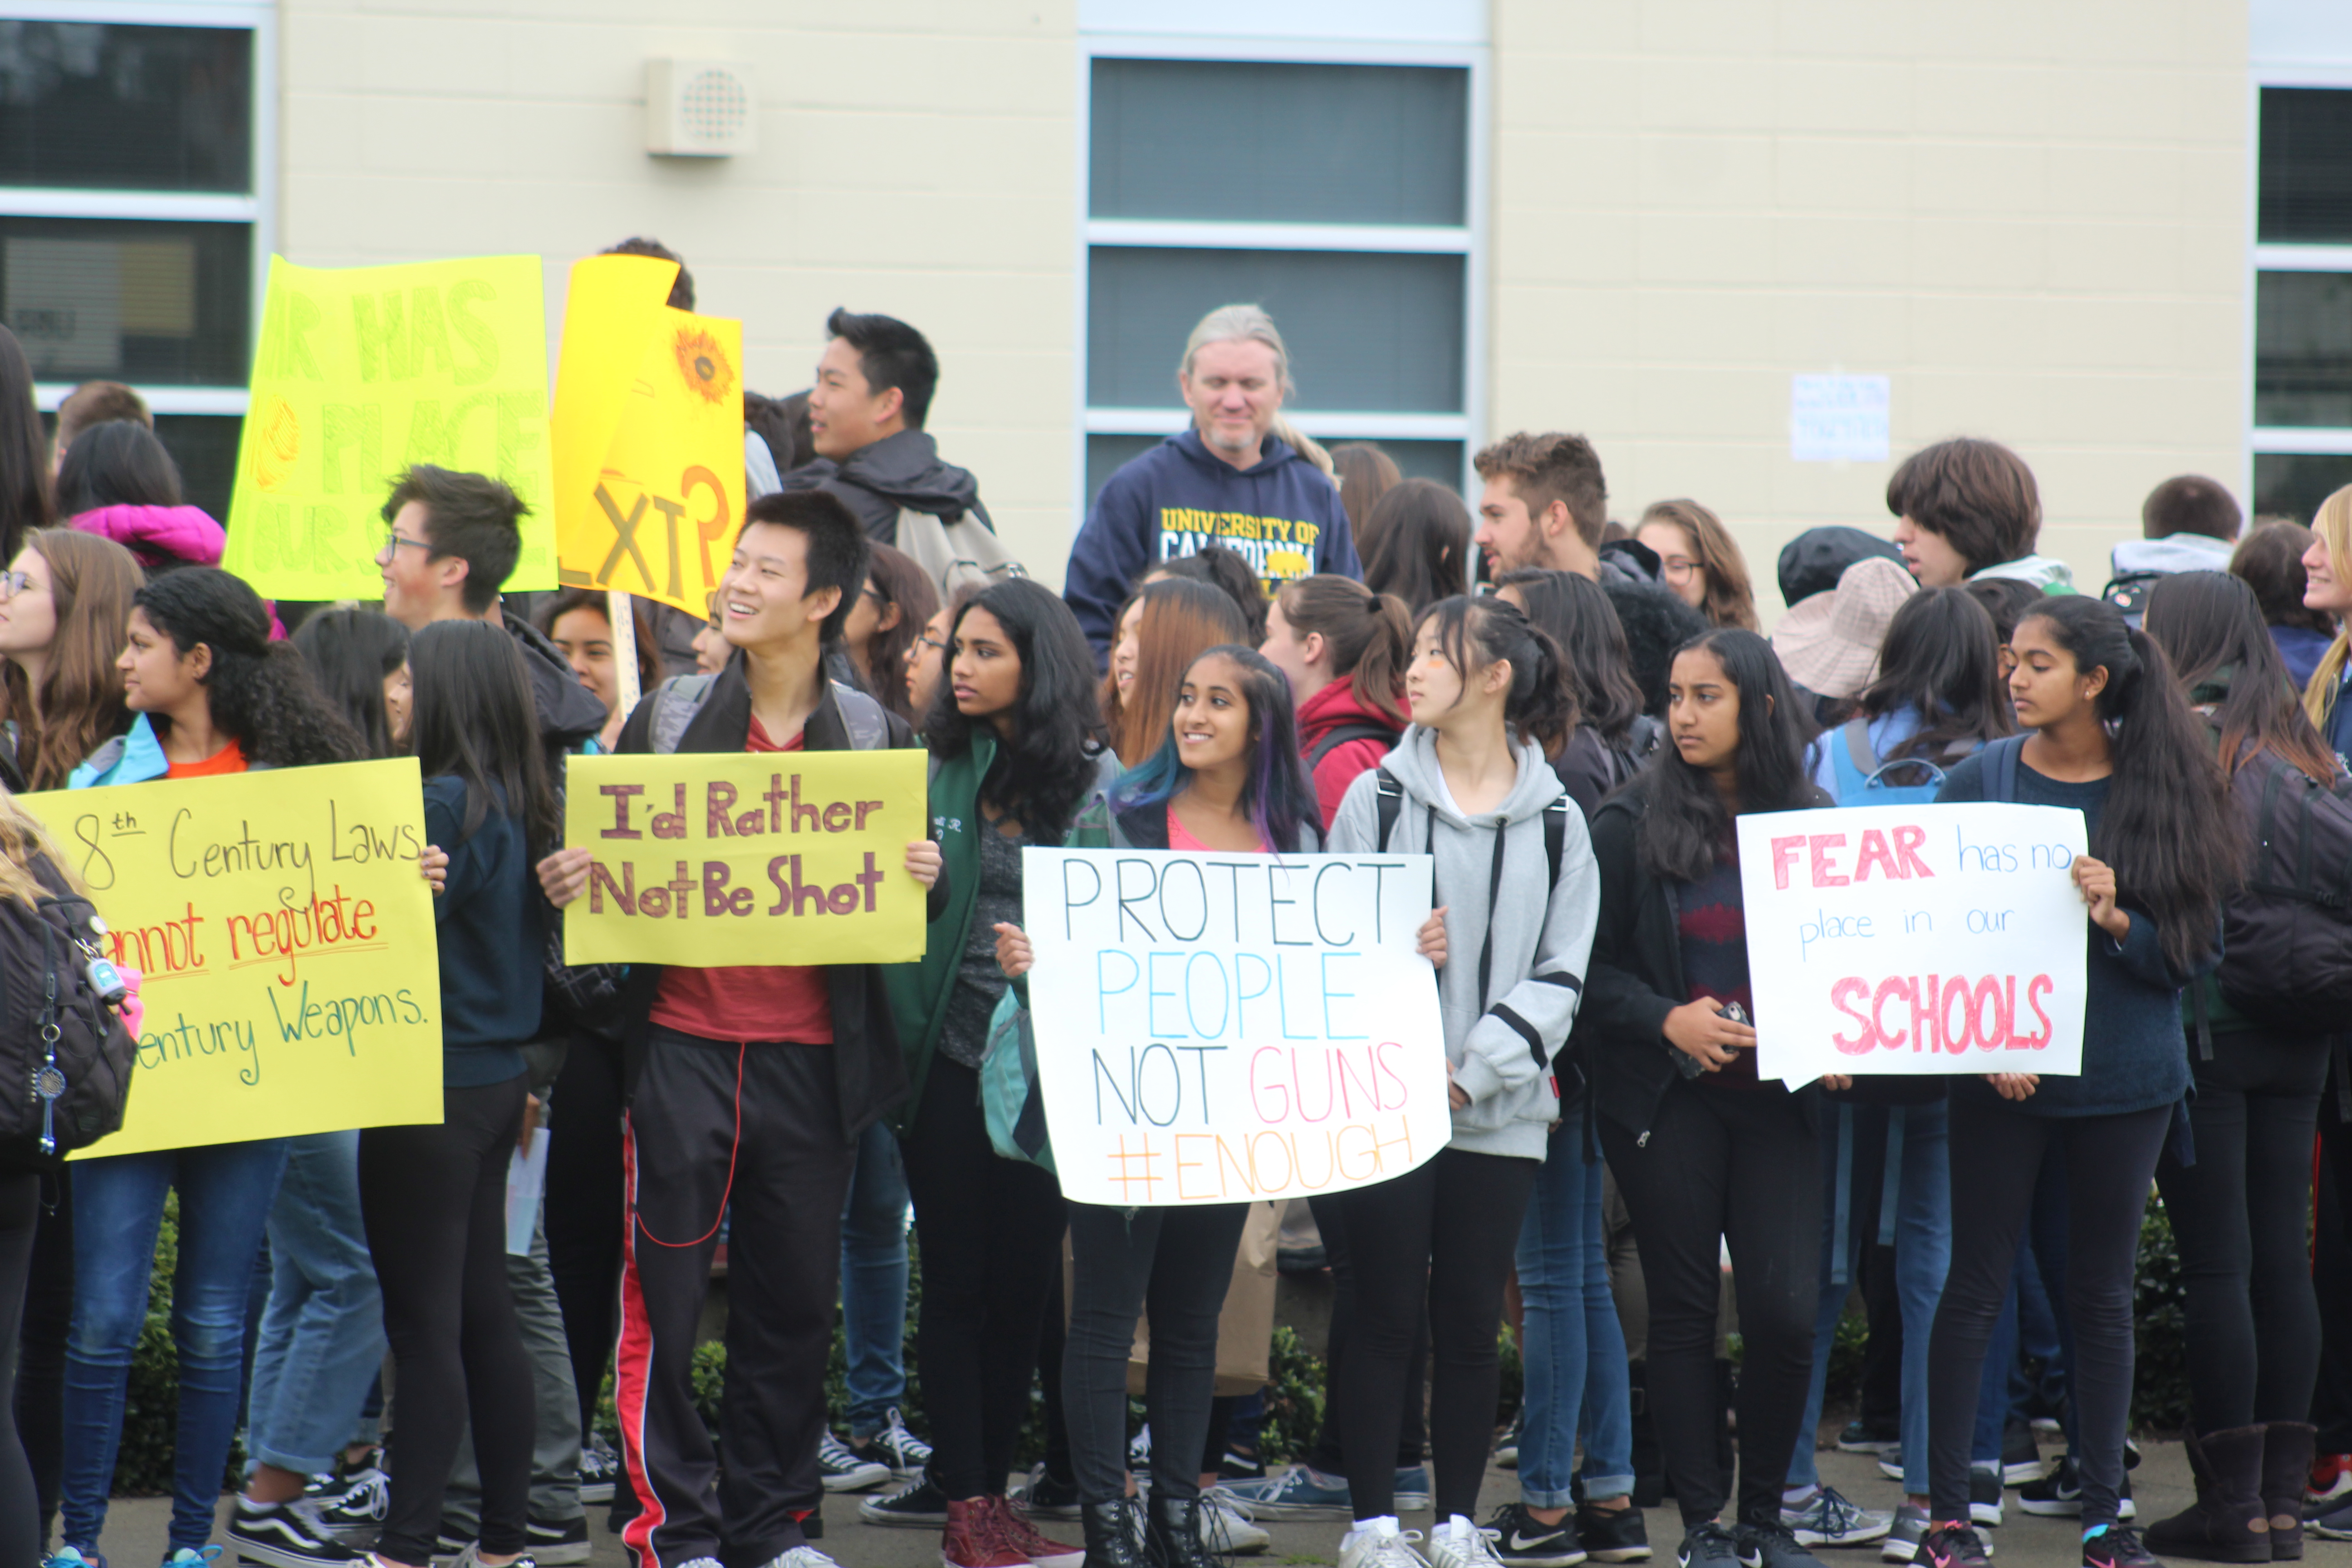 The walk out continued on after the 17 minutes, as students walked to FHS and to city hall.